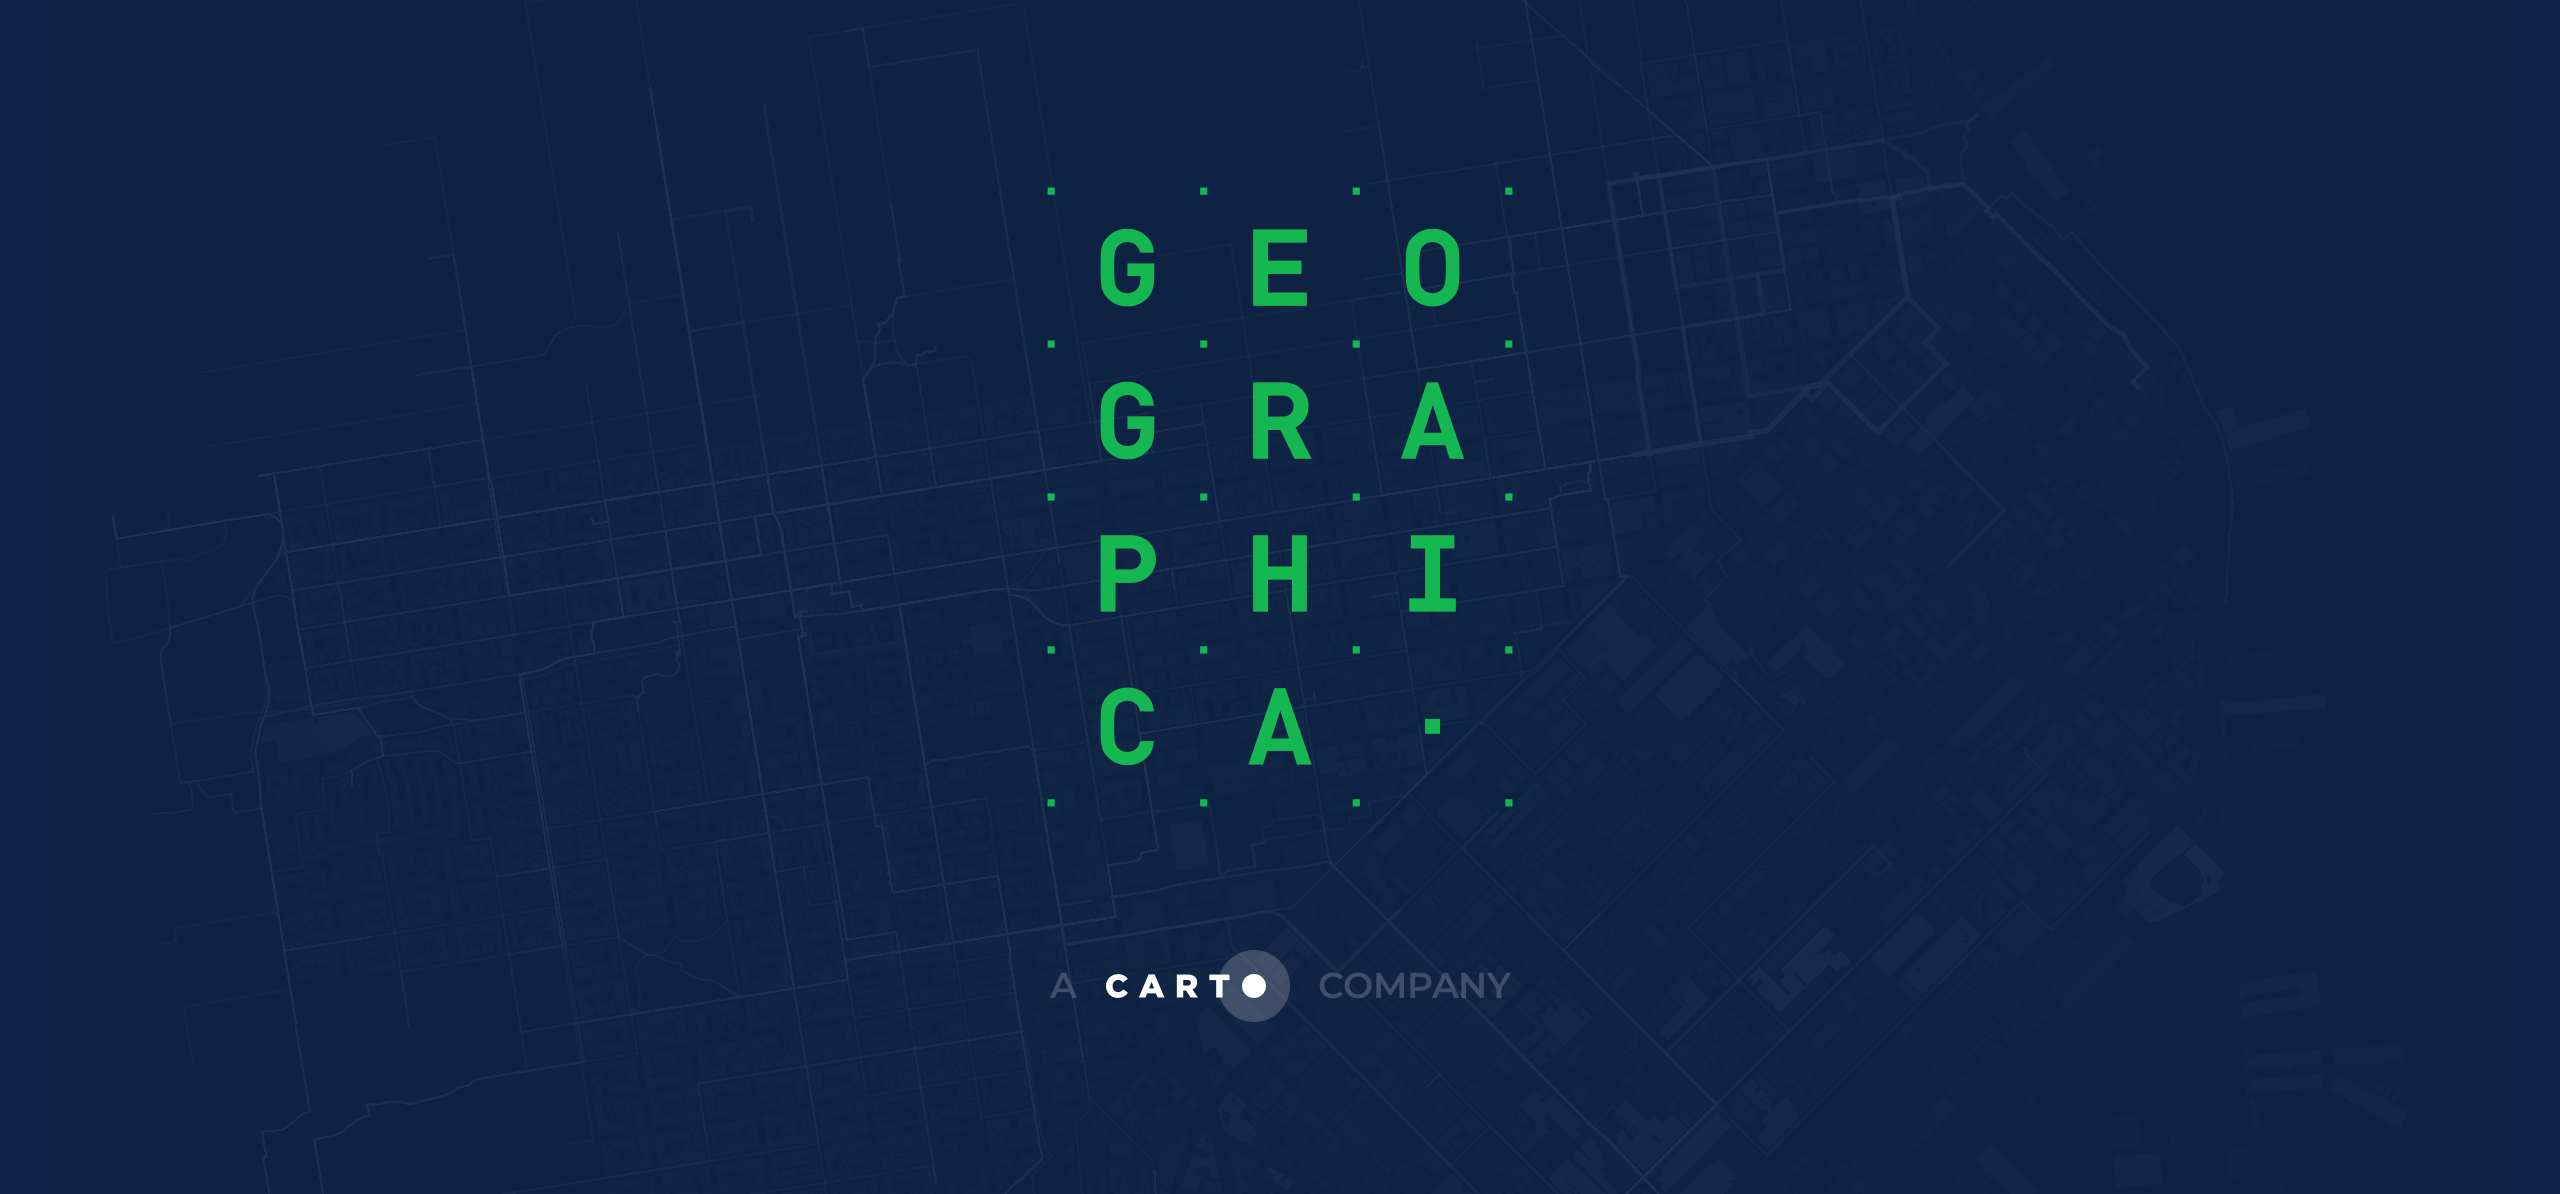 CARTO acquires Geographica to expand its professional services offering